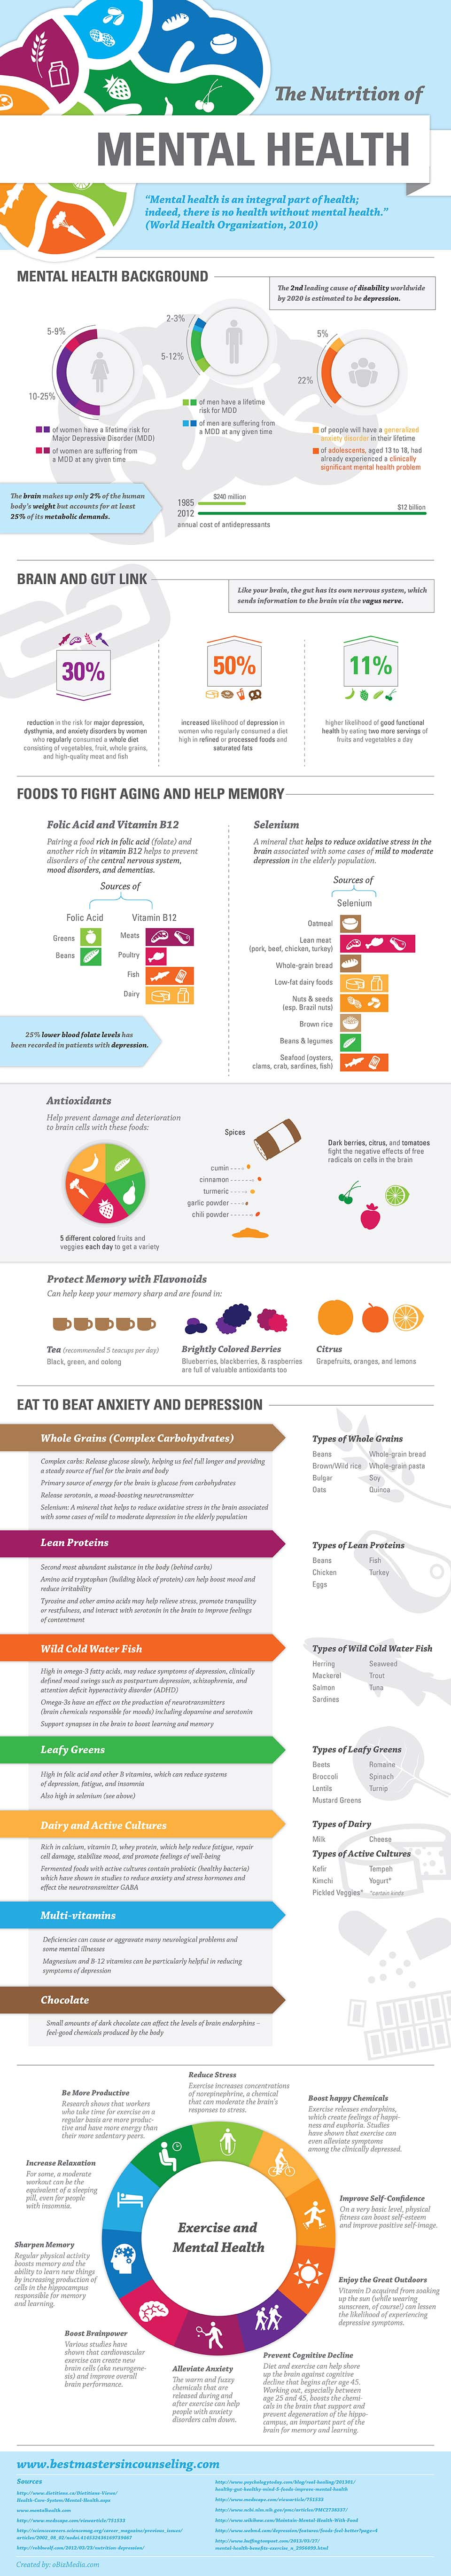 What To Eat For Better Mental Health Infographic